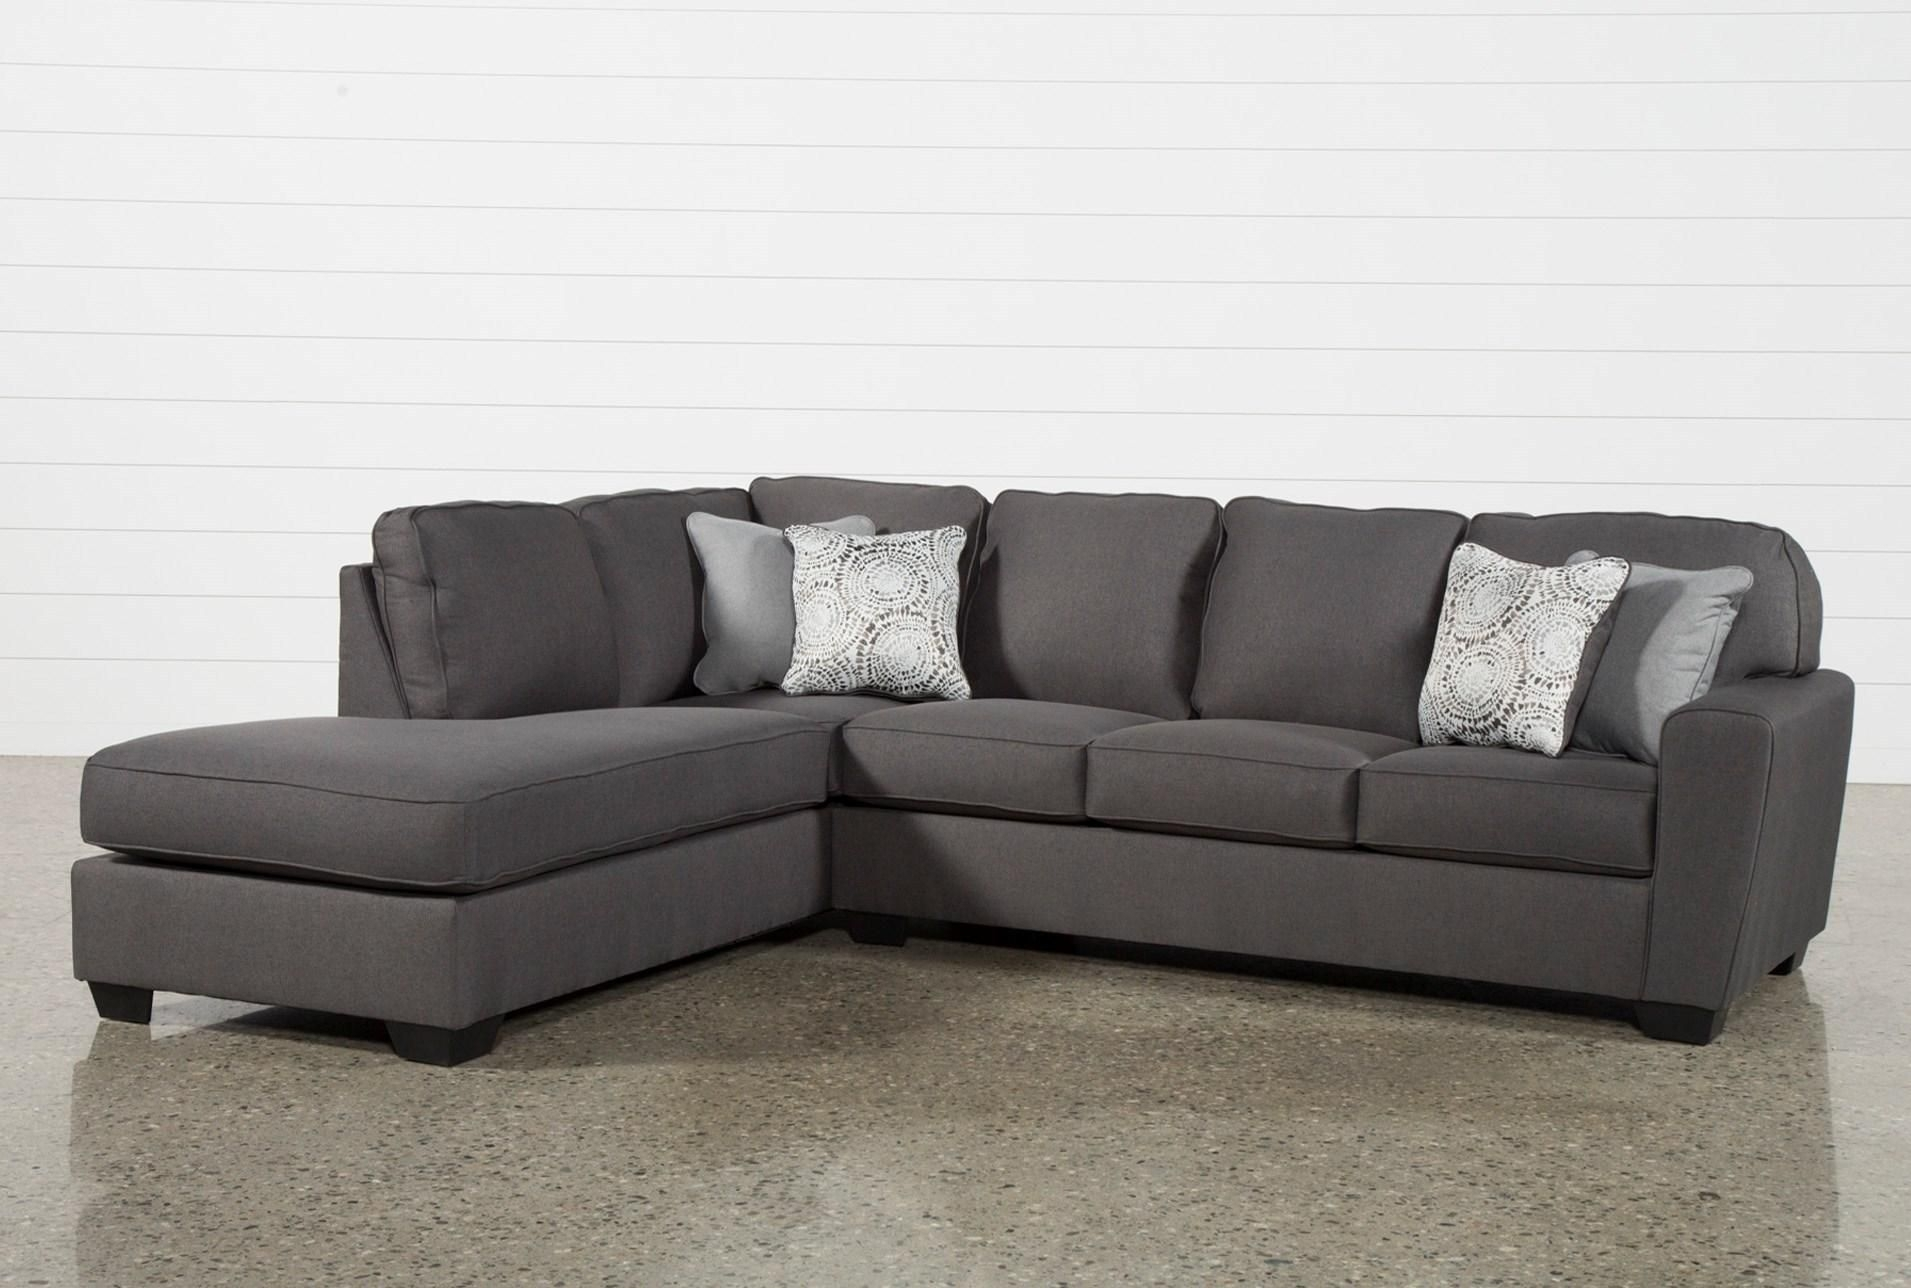 Mcdade Graphite 2 Piece Sectional W/laf Chaise | Graphite, Living throughout Egan Ii Cement Sofa Sectionals With Reversible Chaise (Image 19 of 30)